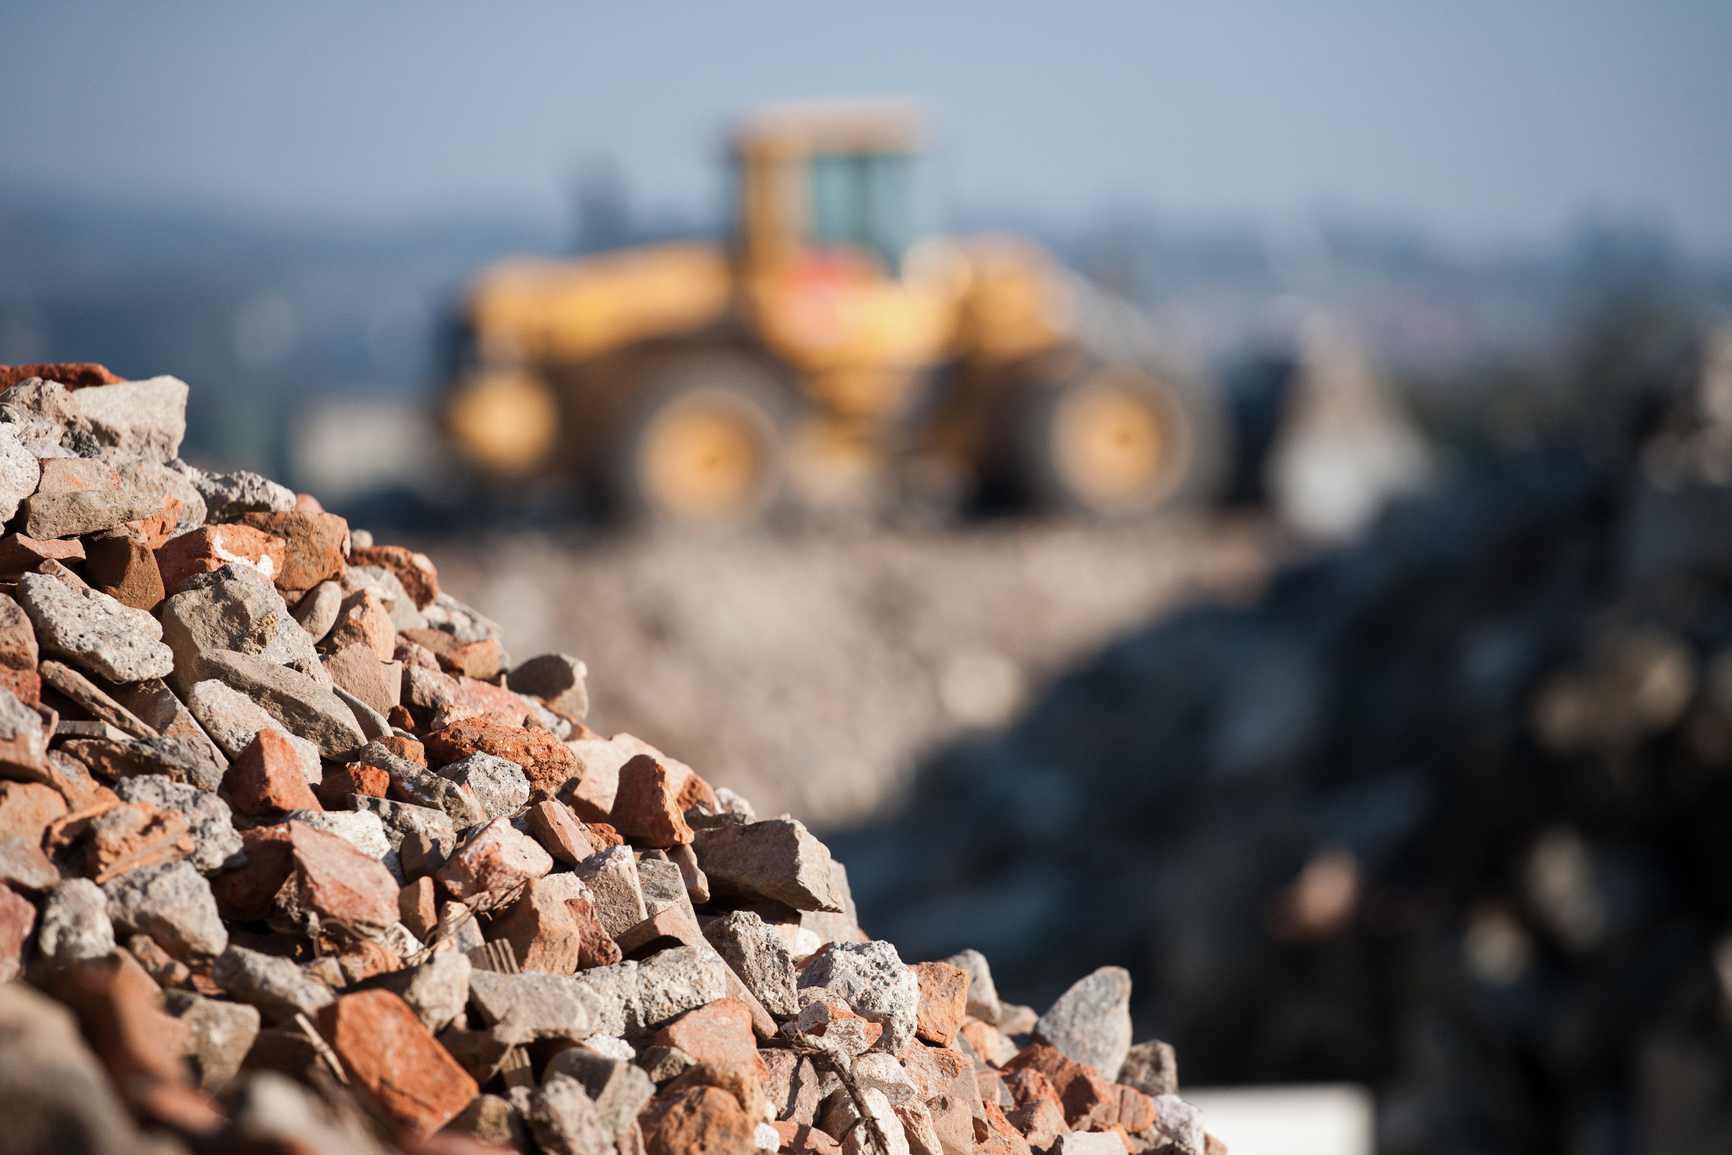 Pile of rocks with excavator in background